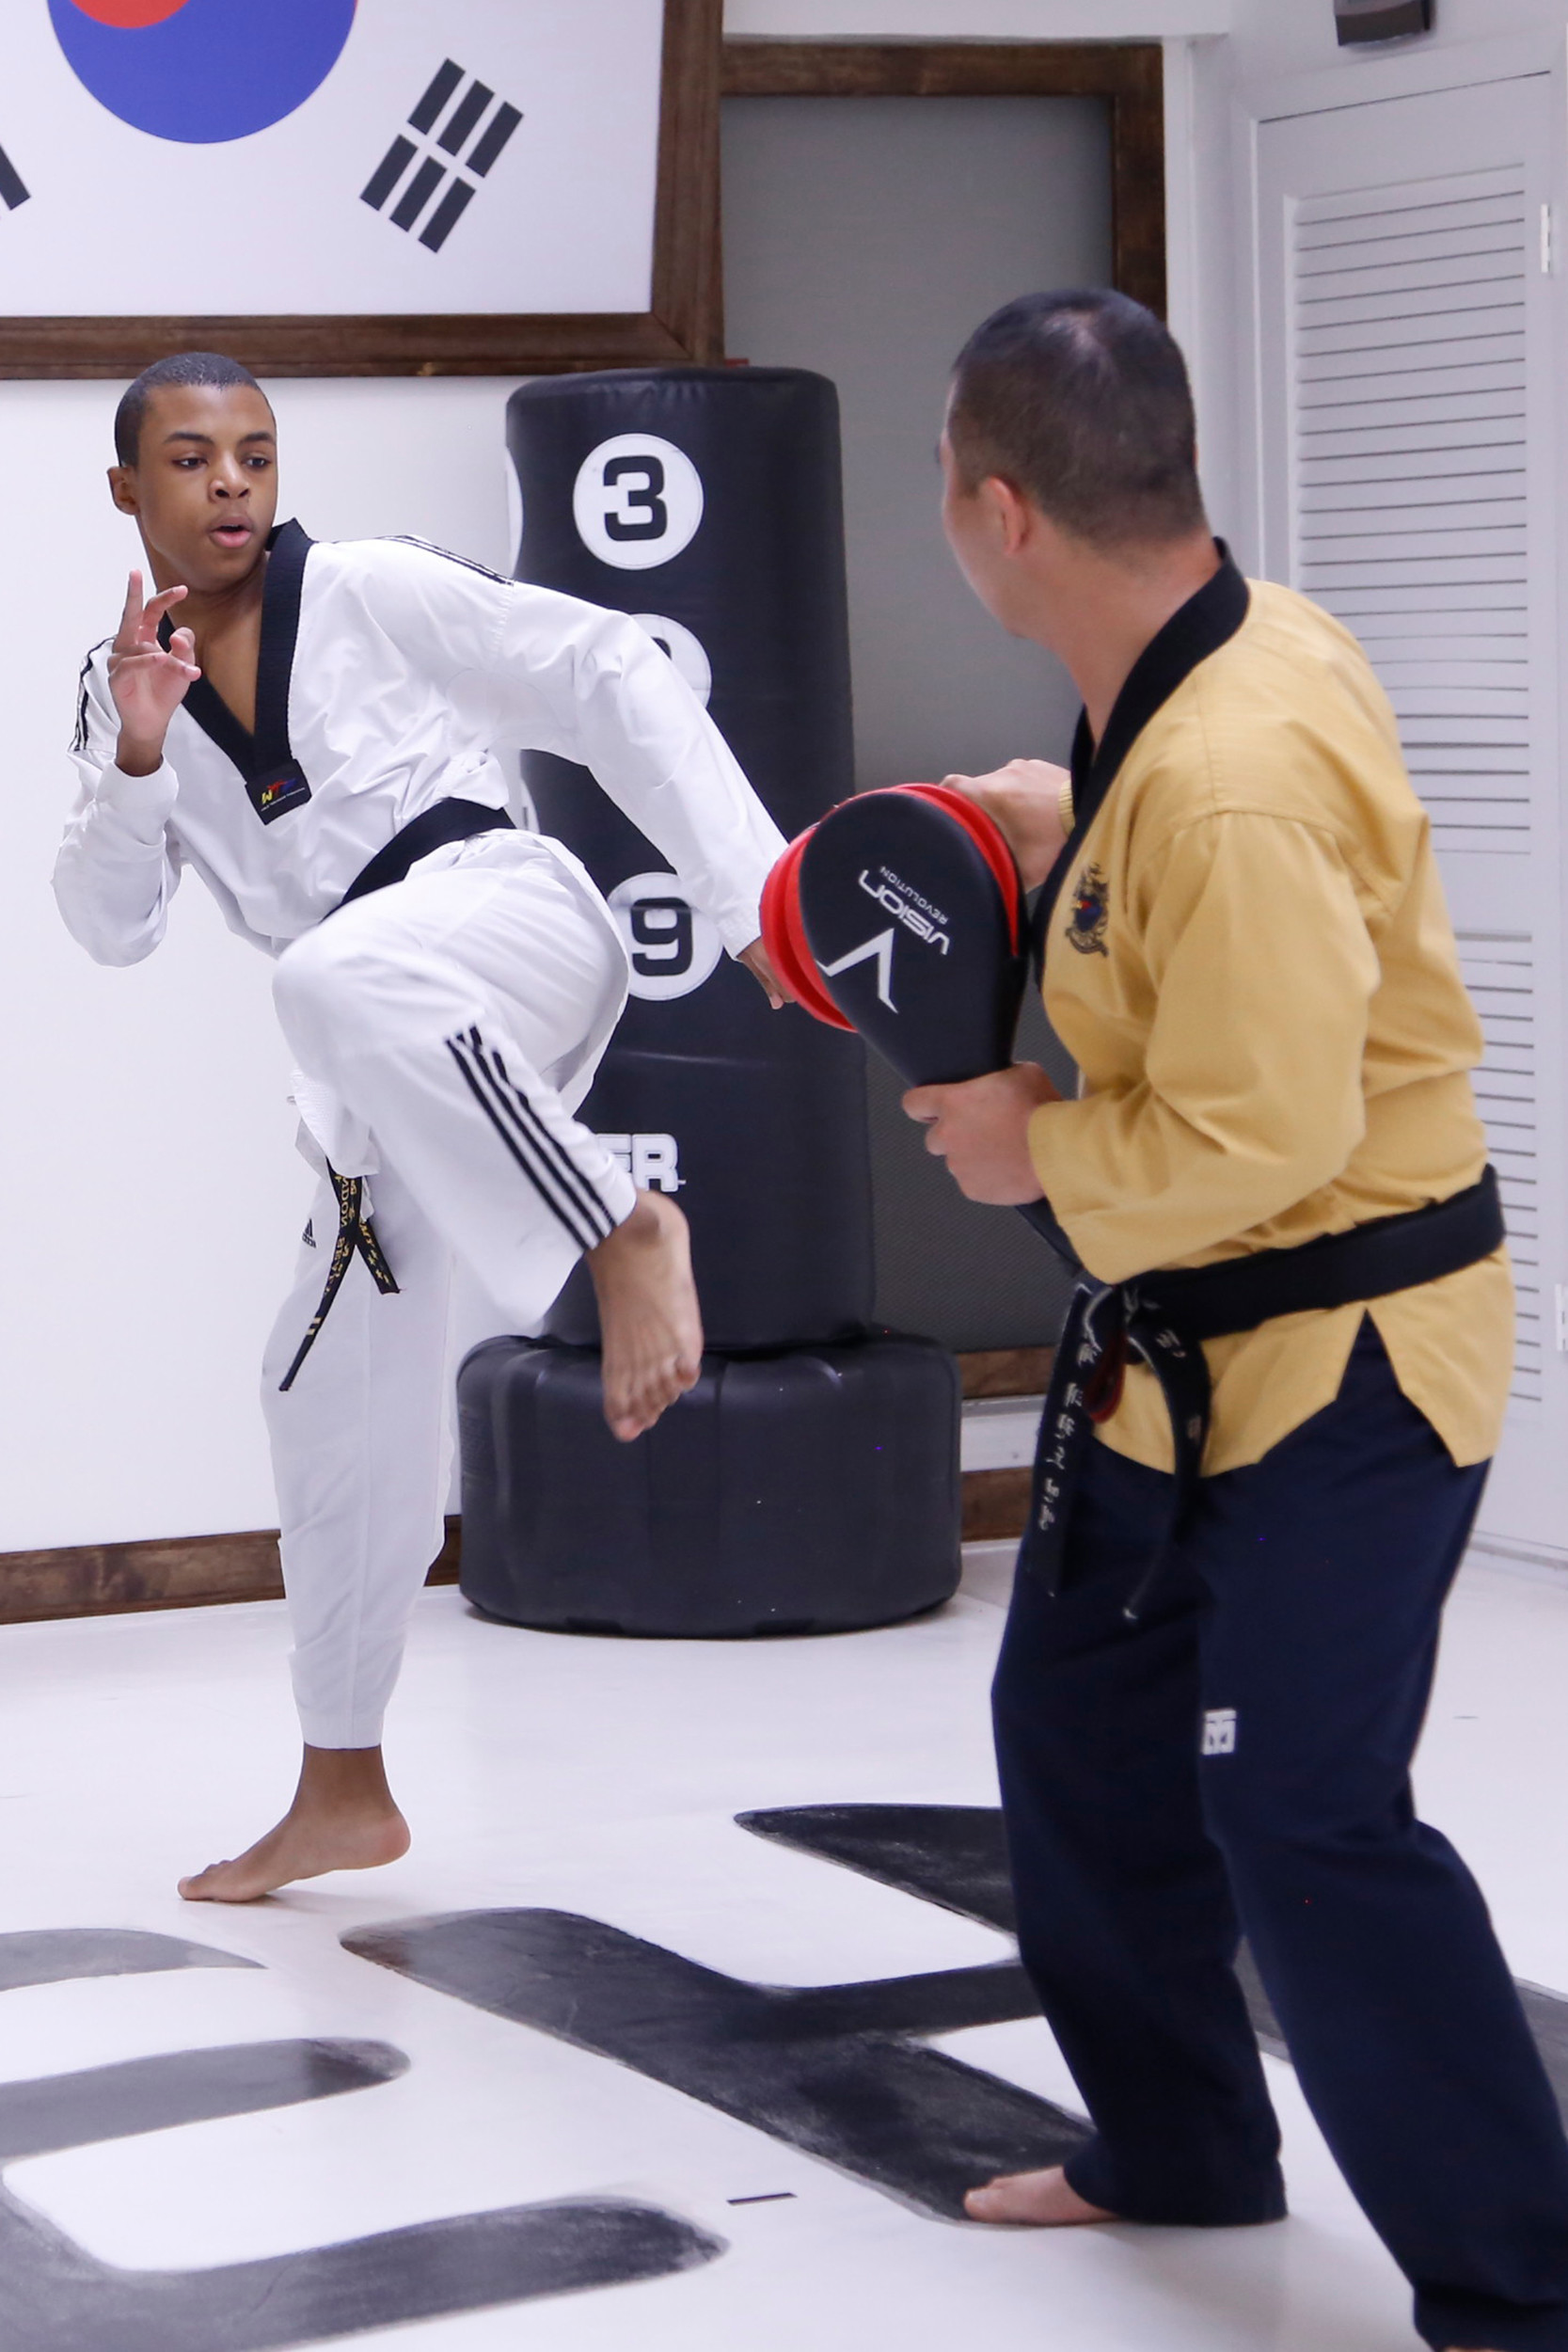 Brandon Sealy sparred with Master Tony Byon on Aug. 4 in preparation for the Junior Pan Am Taekwondo Championship.